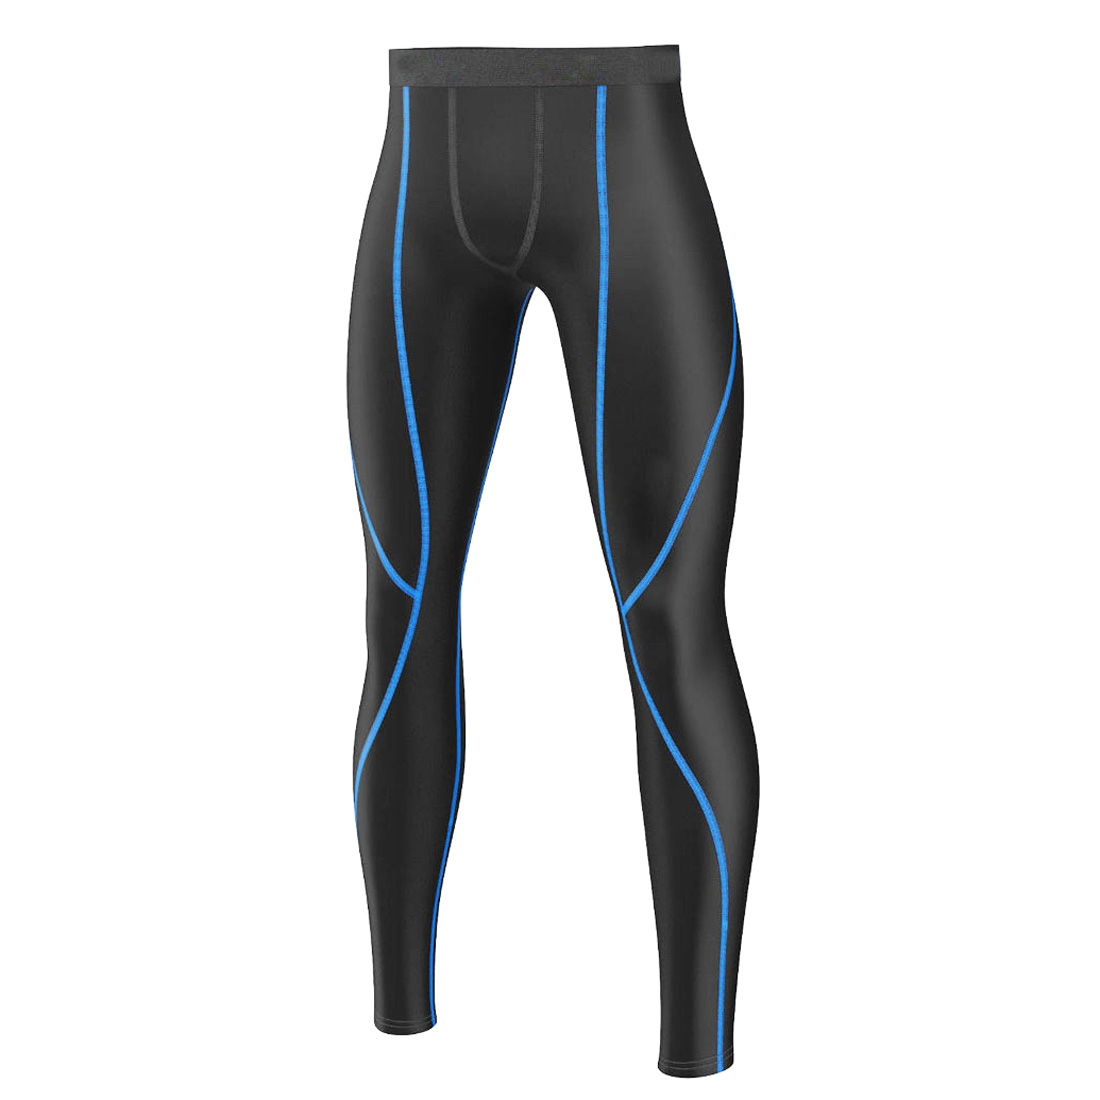 Running tights are amazing for colder night runs, especially if they have reflective strips on them. I personally chose to wear either base layer compression shorts or spandex briefs under mine, just to keep everything in place.